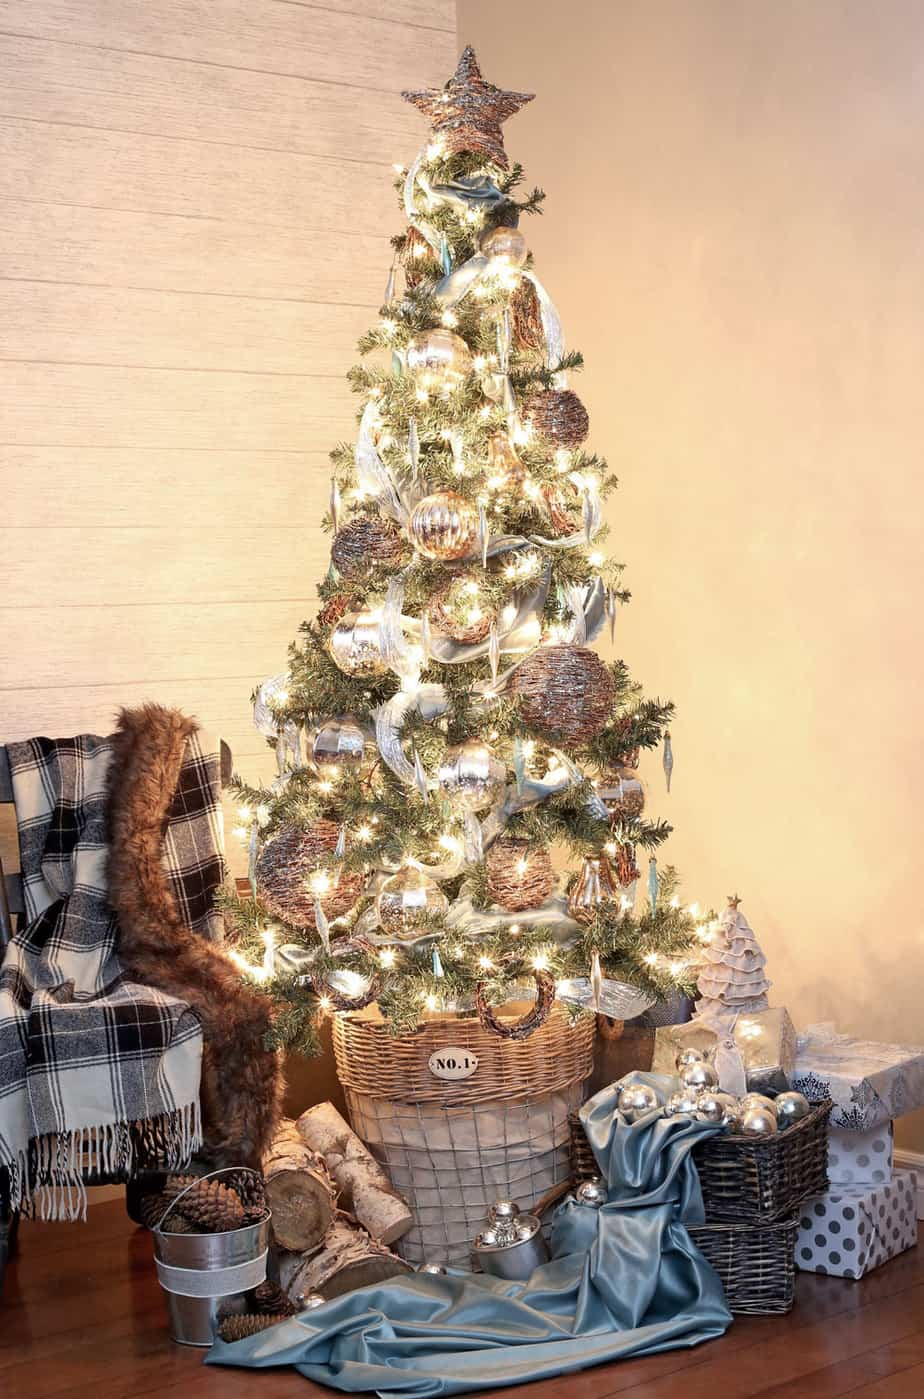 Hold Picture Ornaments